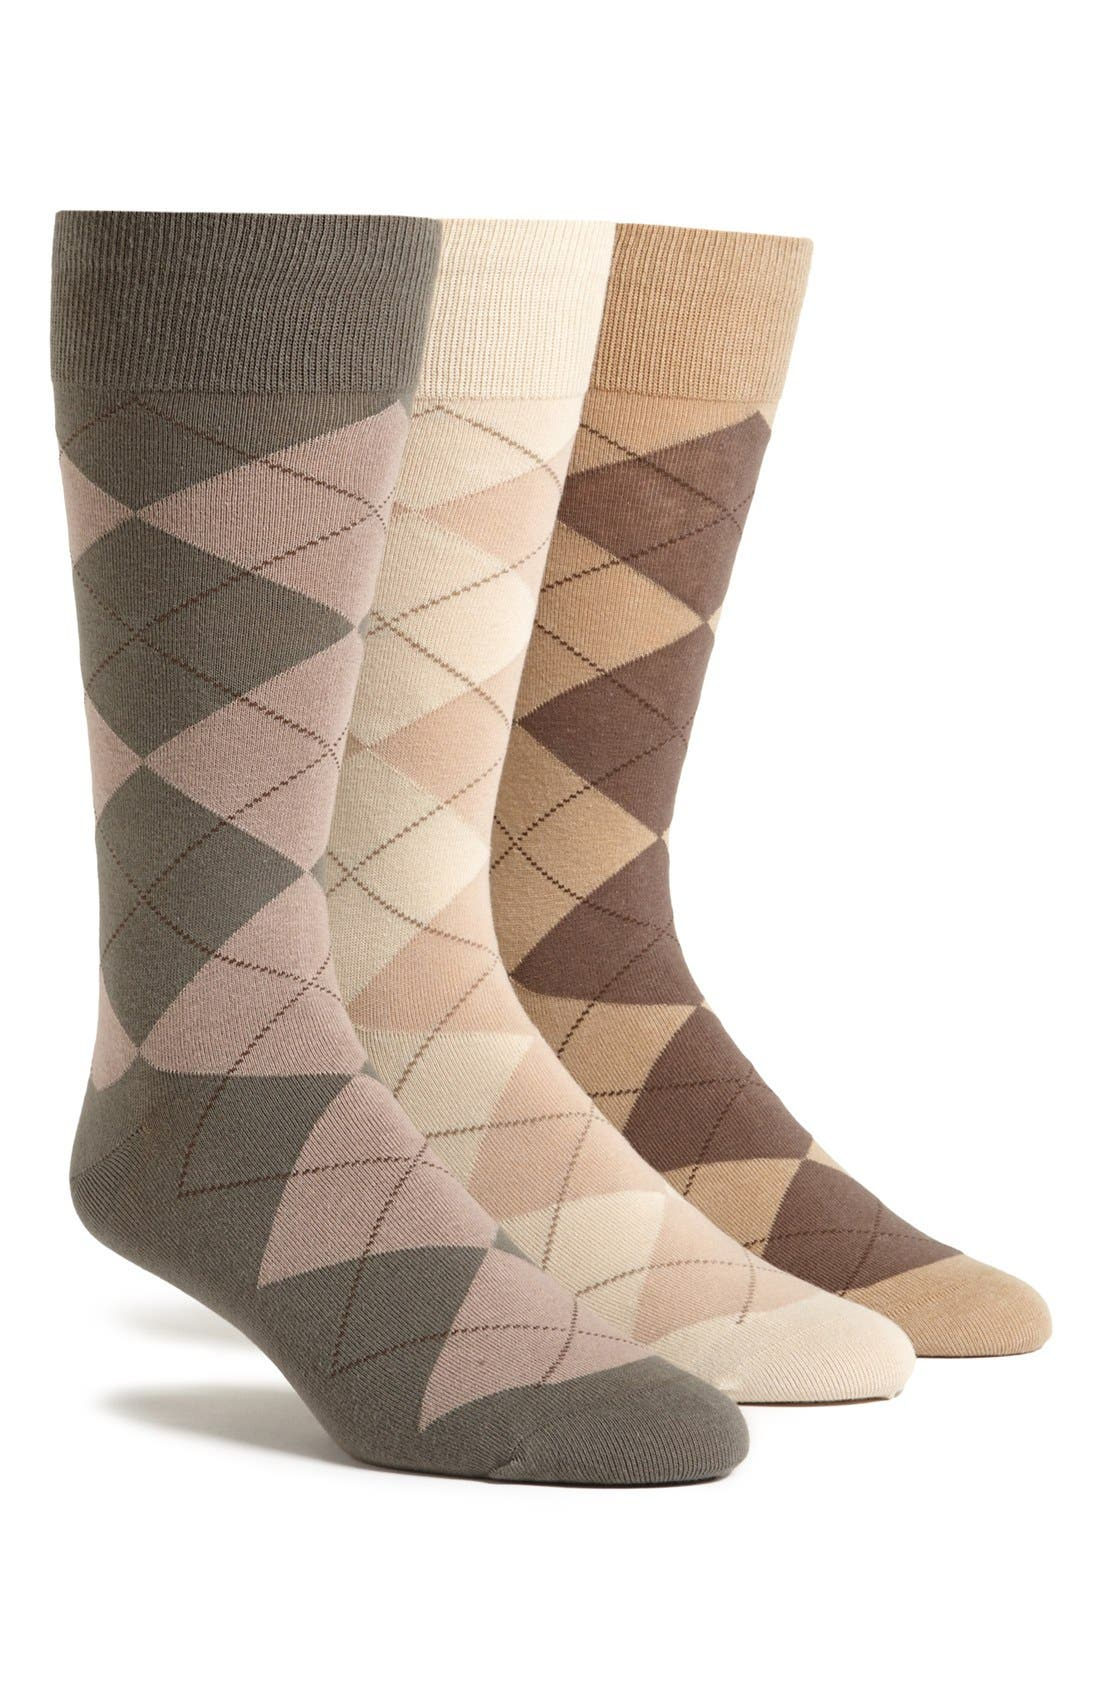 3-Pack Argyle Socks,                             Main thumbnail 1, color,                             LT COFFEE/ BONE WHITE/ TOBACCO